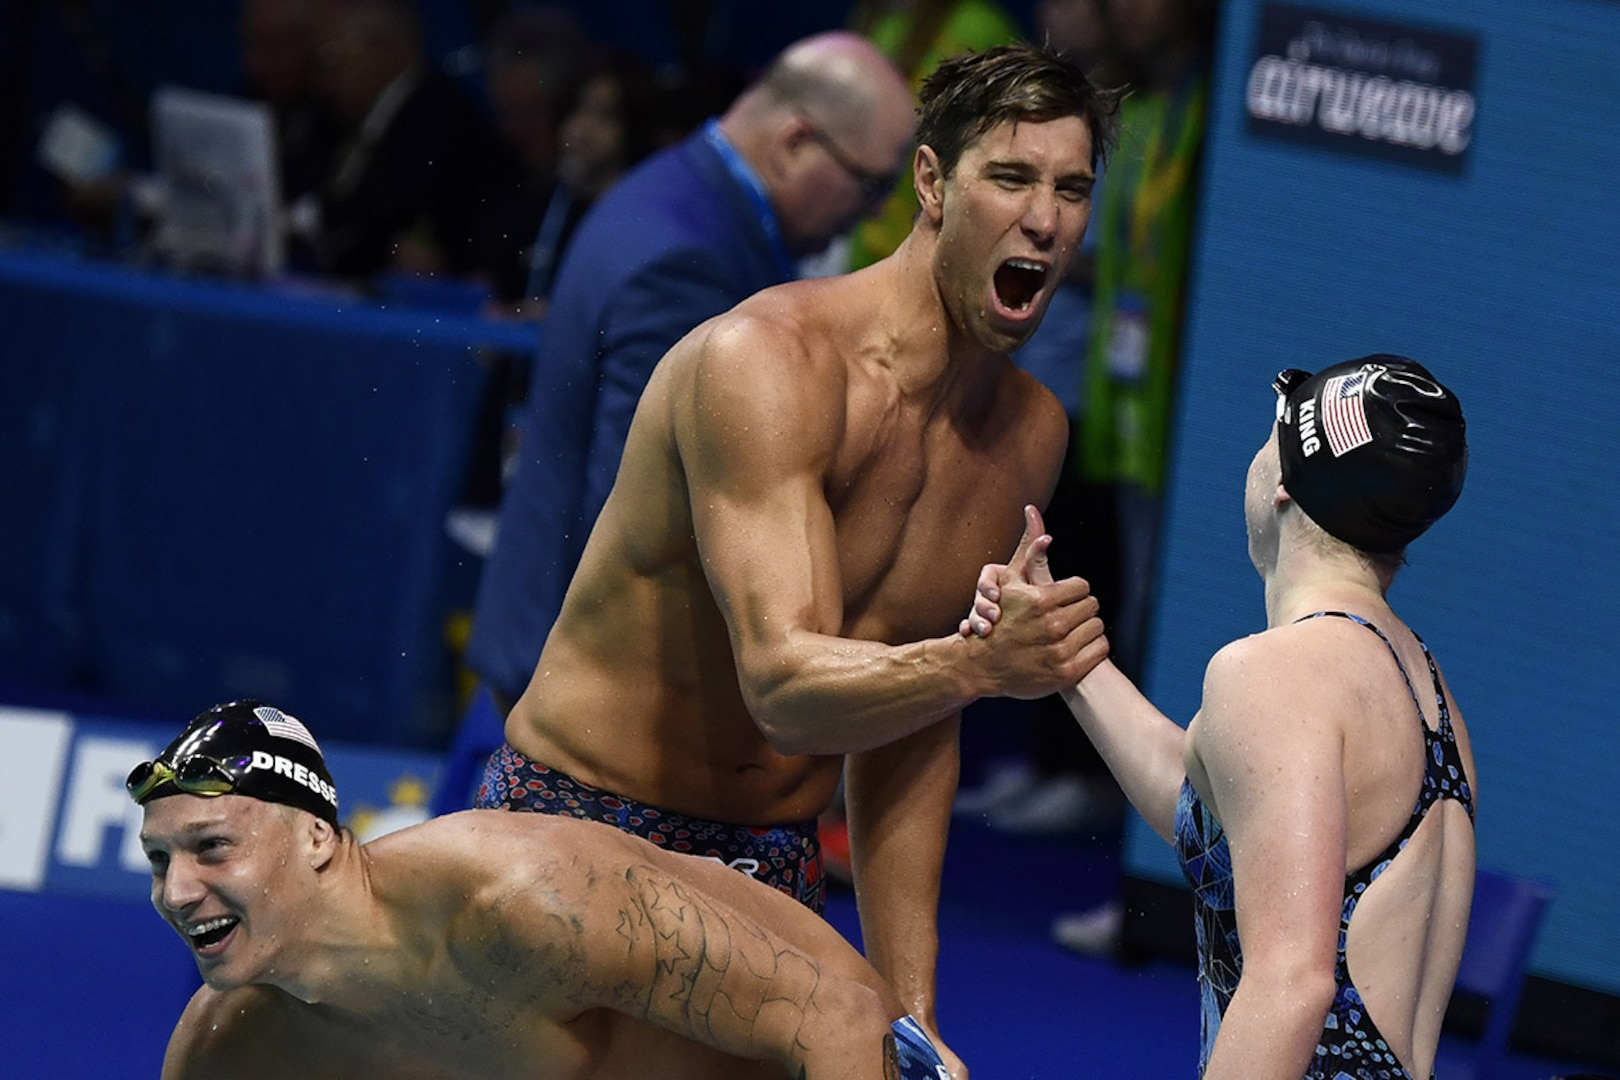 Matt Grevers celebrates with Lilly King after winning mixed relay gold